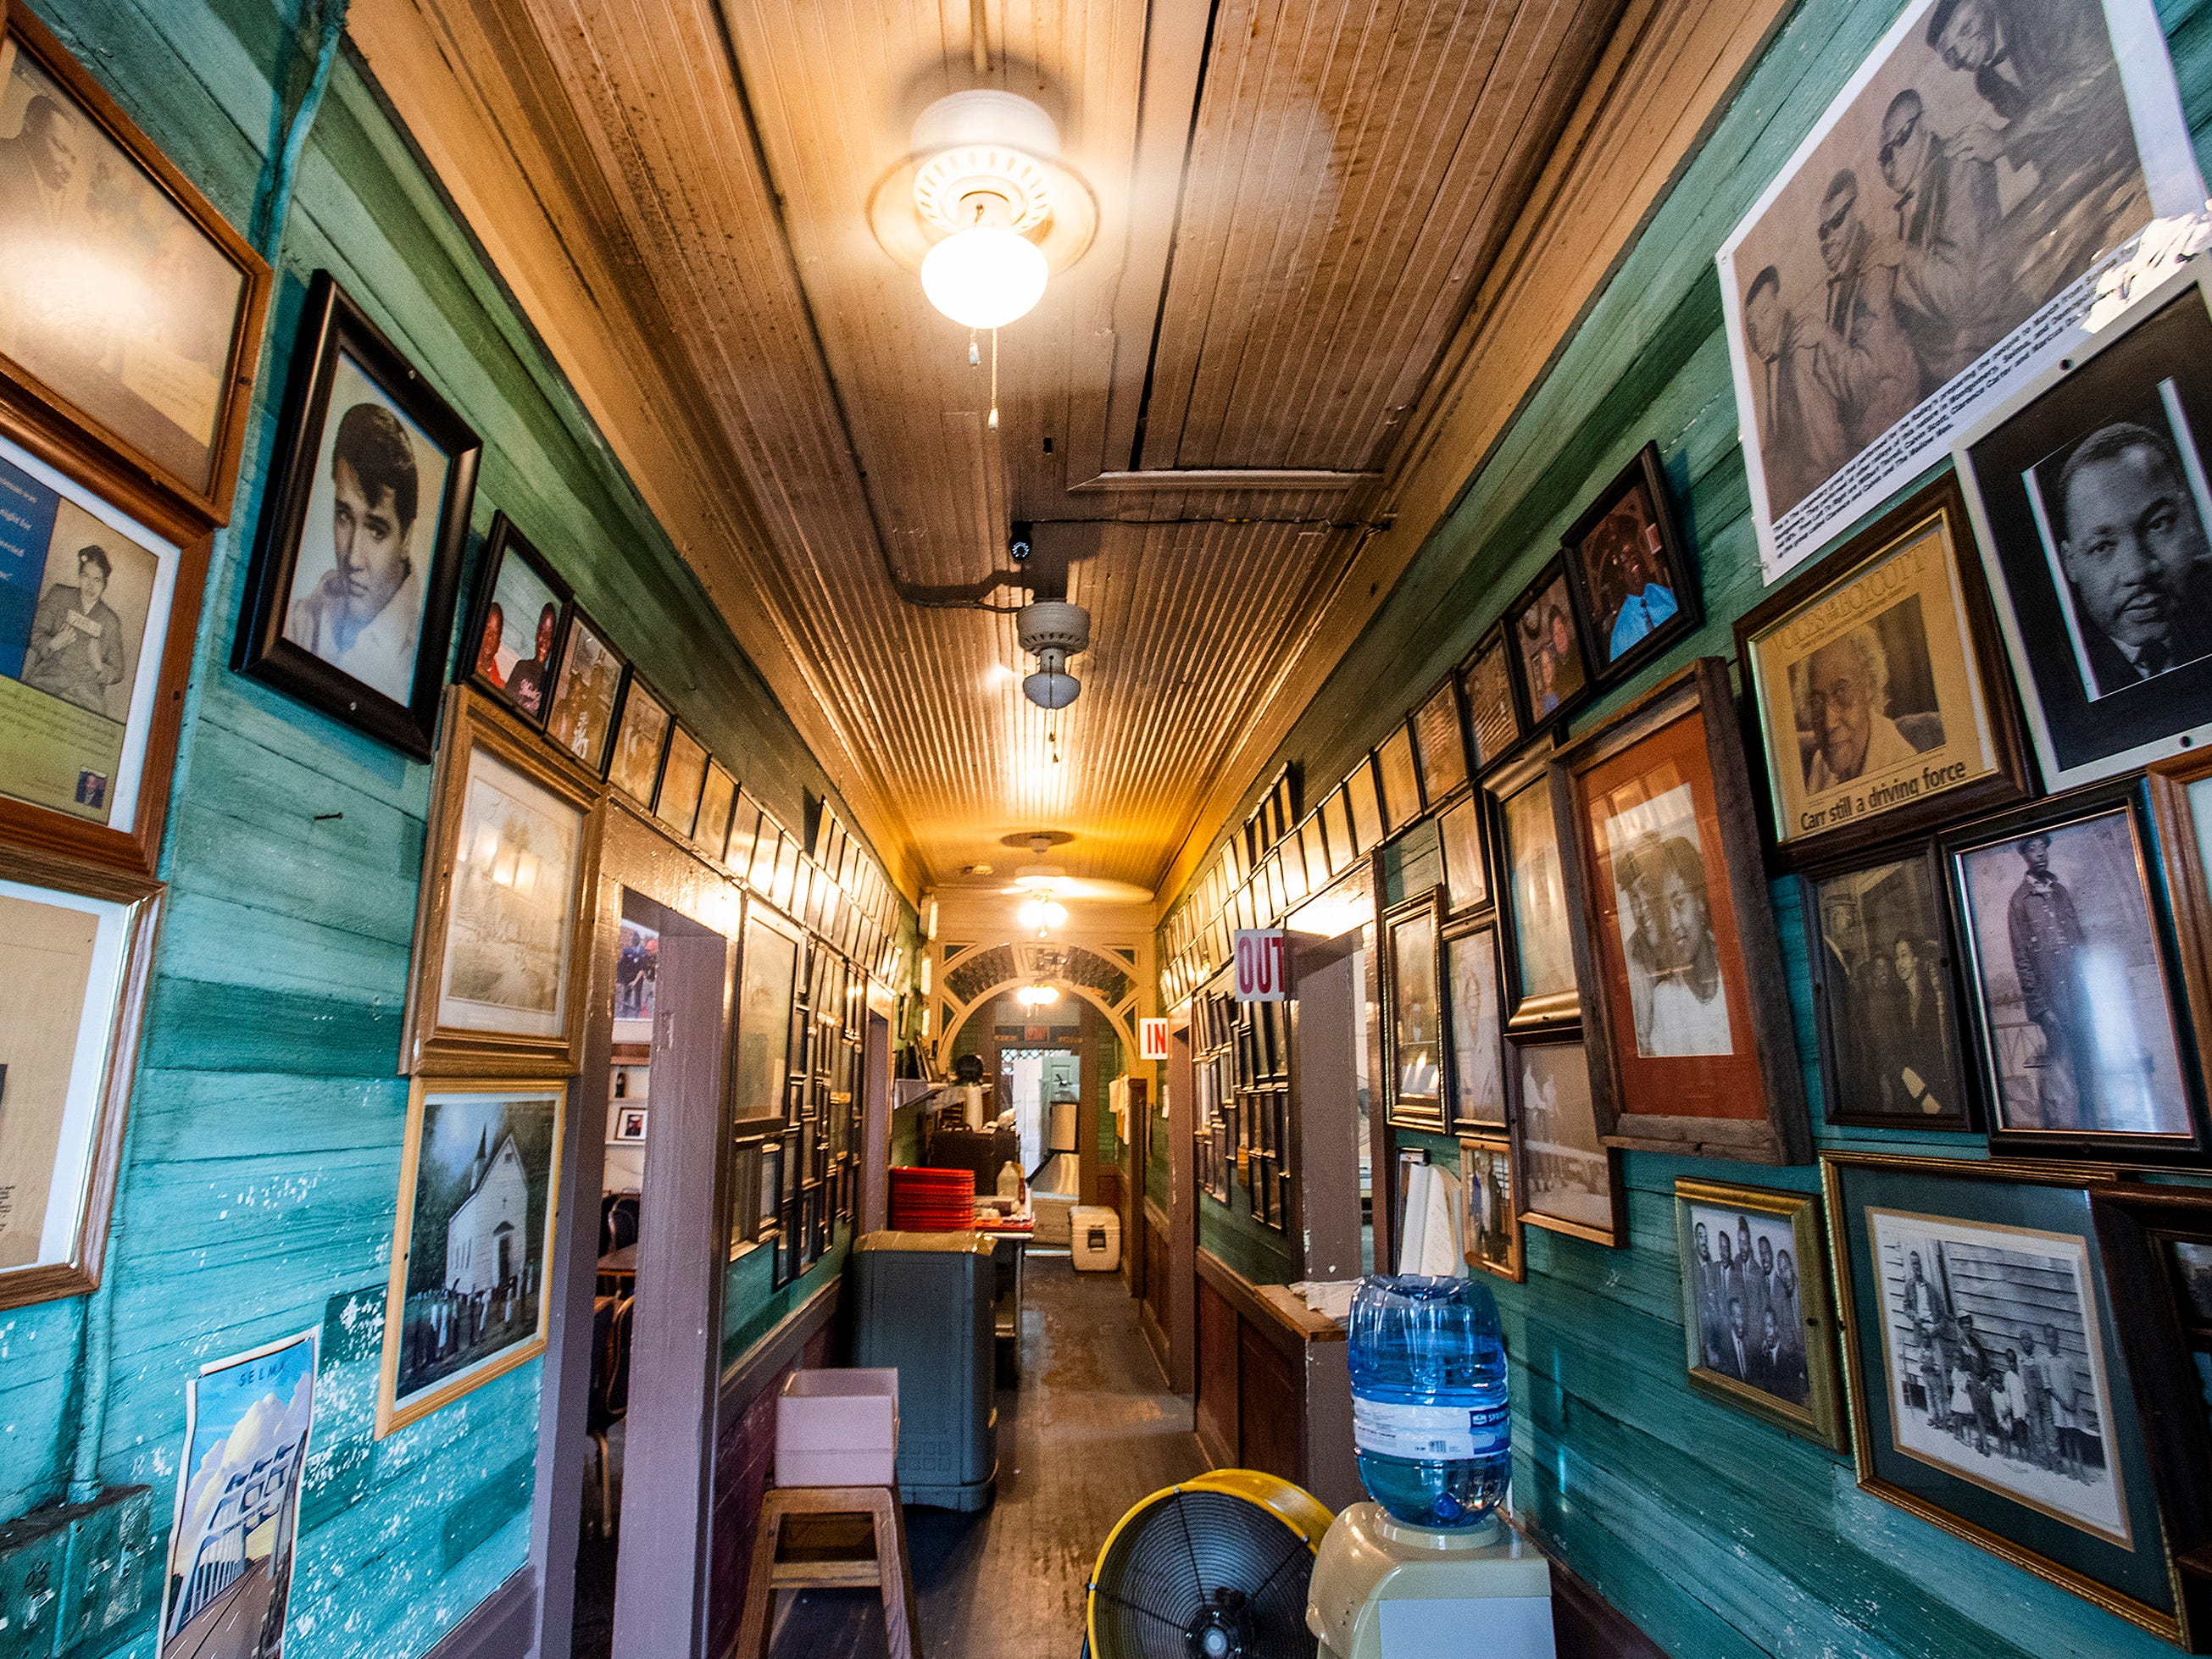 Photos hang on the walls at Mrs. B's Home Cooking in Montgomery, Ala., on Wednesday October 10, 2018.